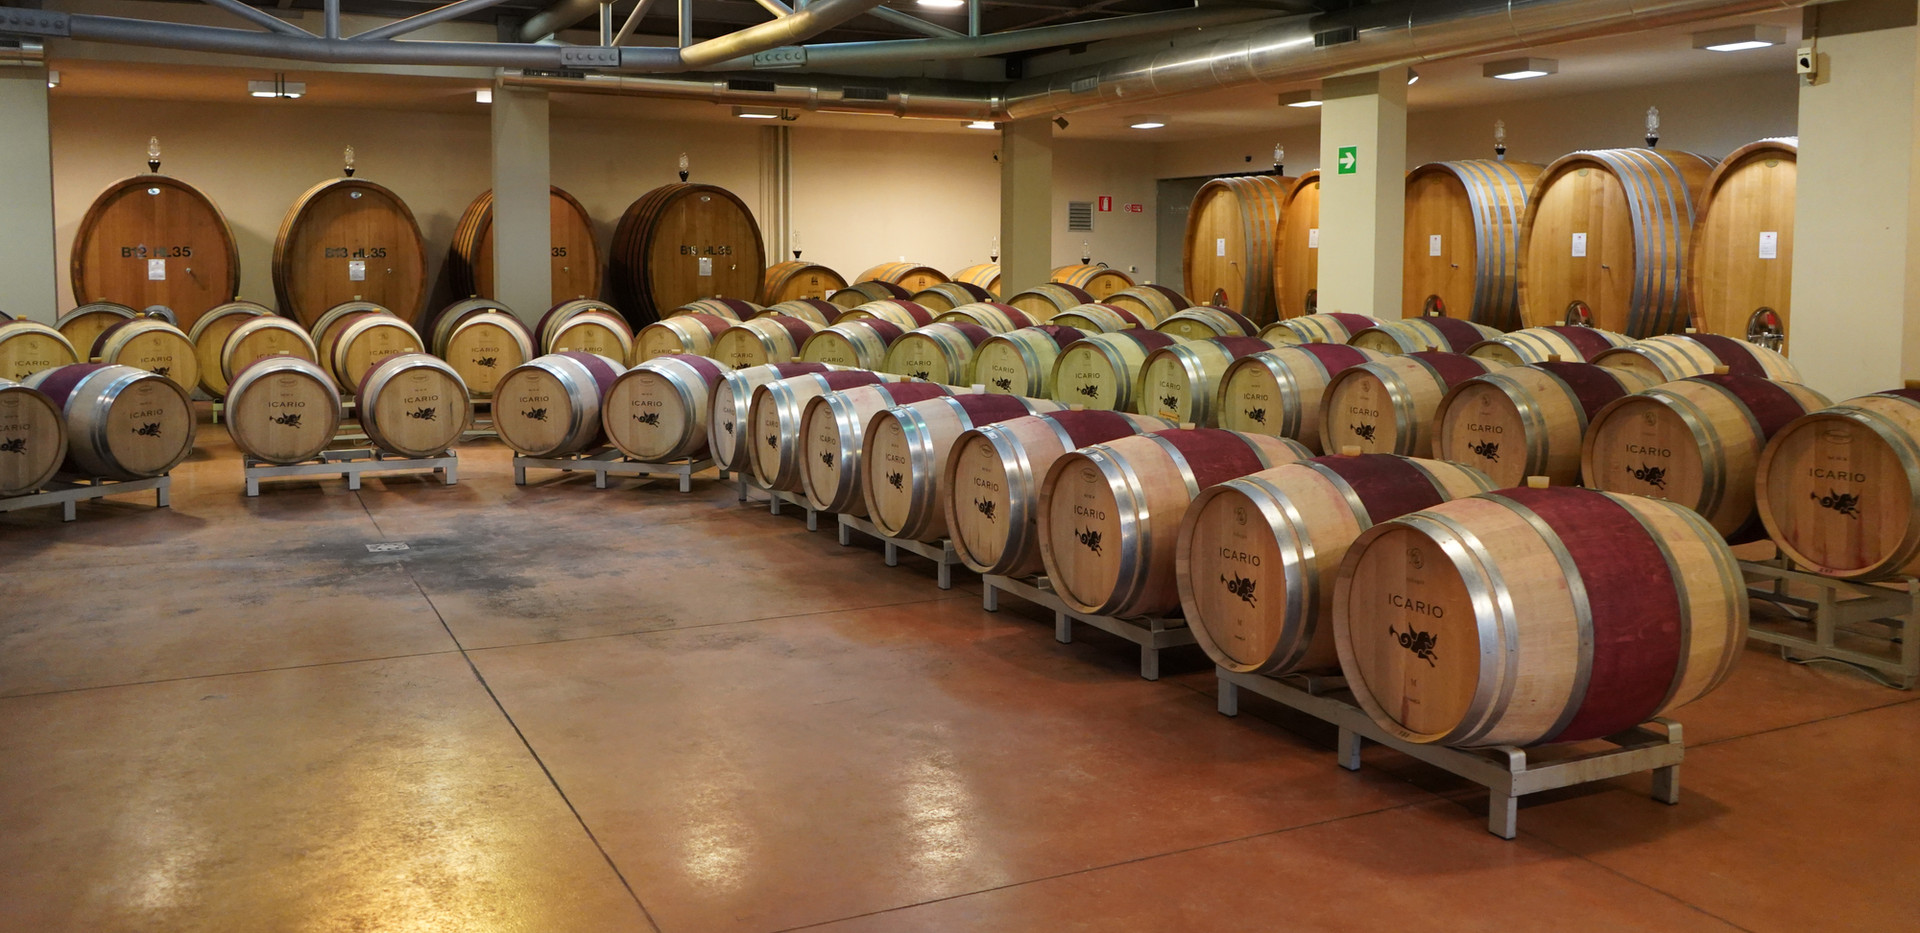 Another wonderful Montepulciano winery